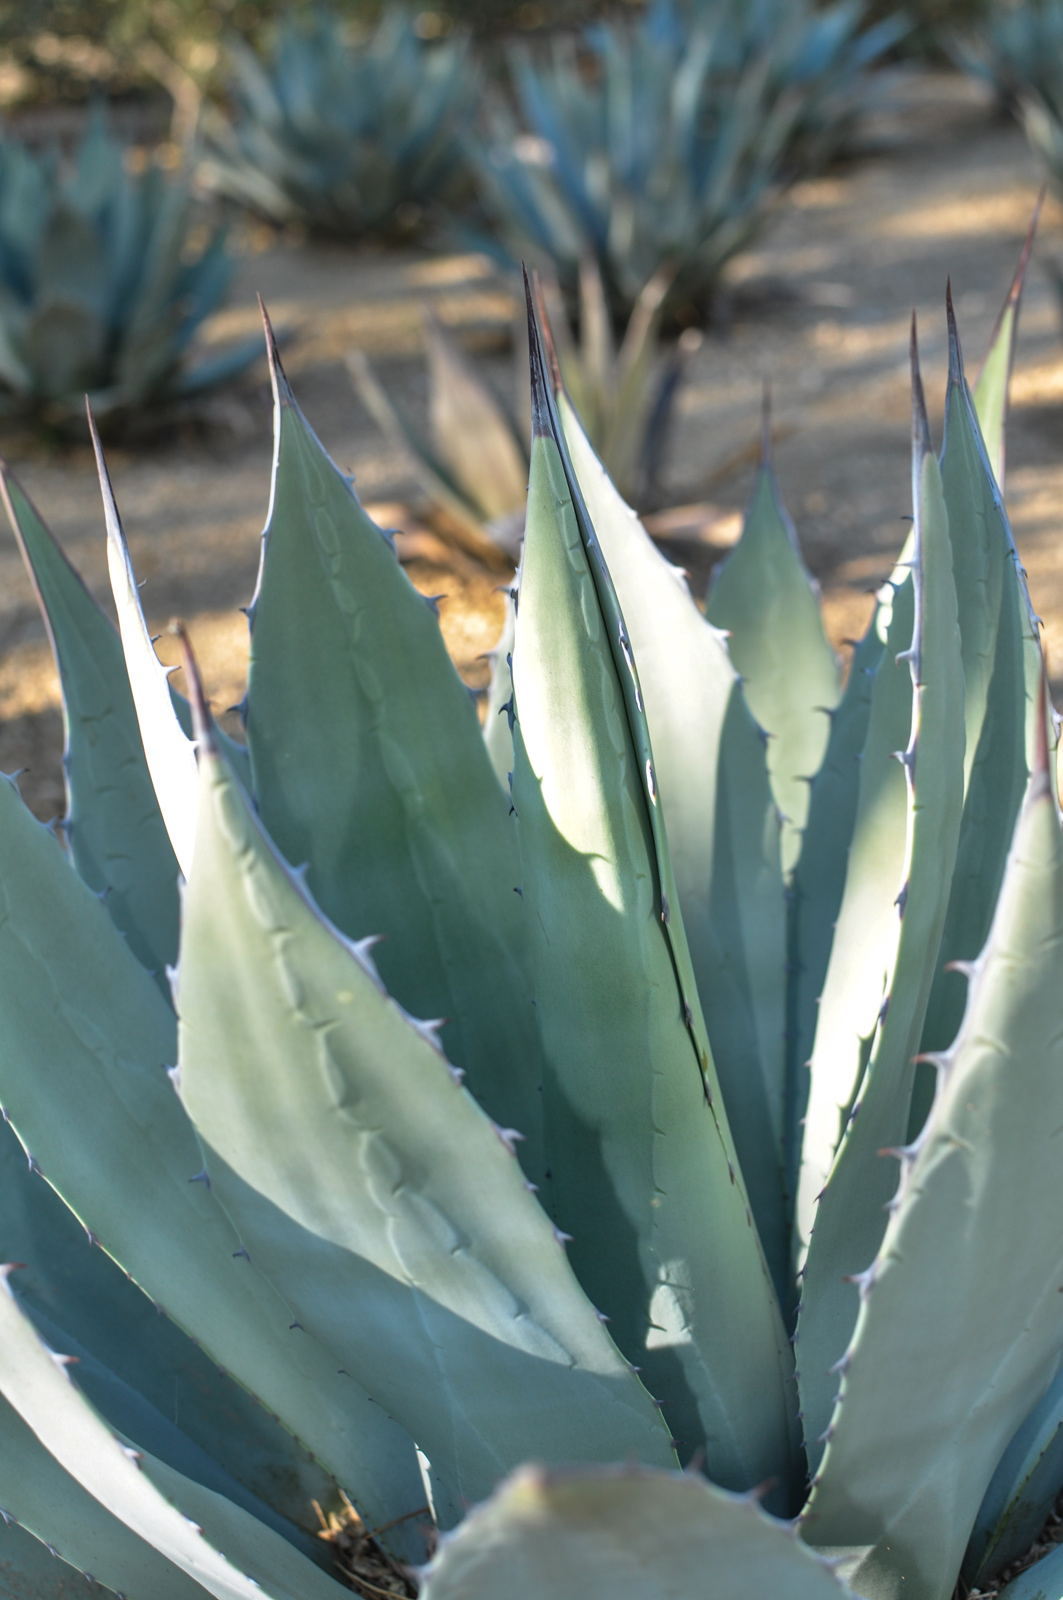 A close-up of the leaves and teeth of the Parry's Agave.